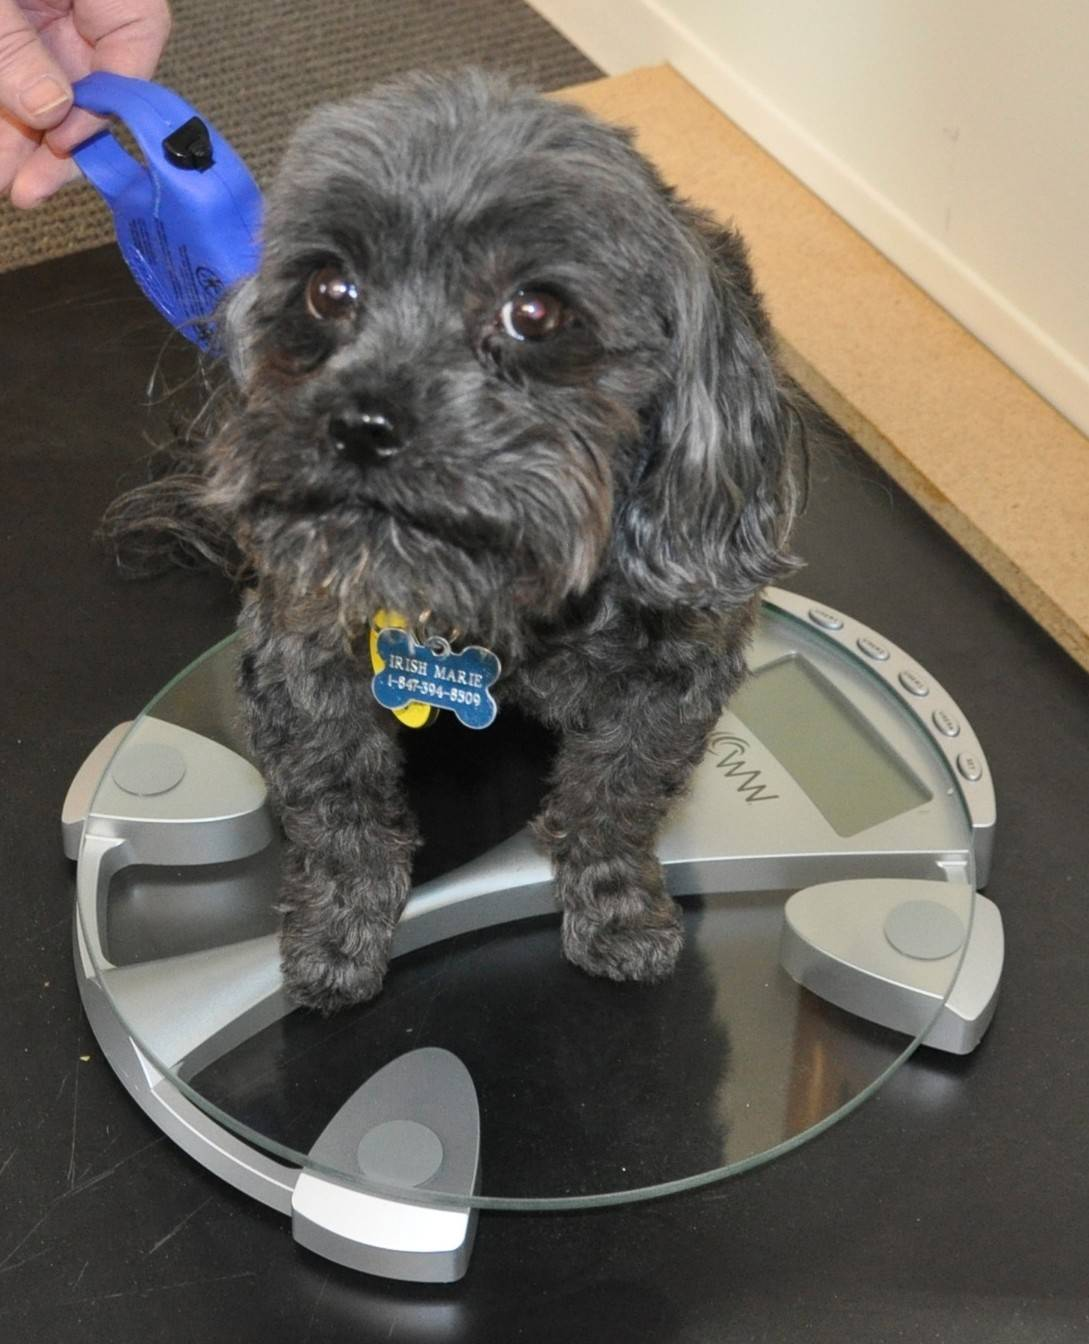 JourneyCare Team Mojo's mascot, Irish Marie, weighed in at a svelte 9 pounds. In addition to supporting the Fittest Loser team, she serves as a therapy dog.